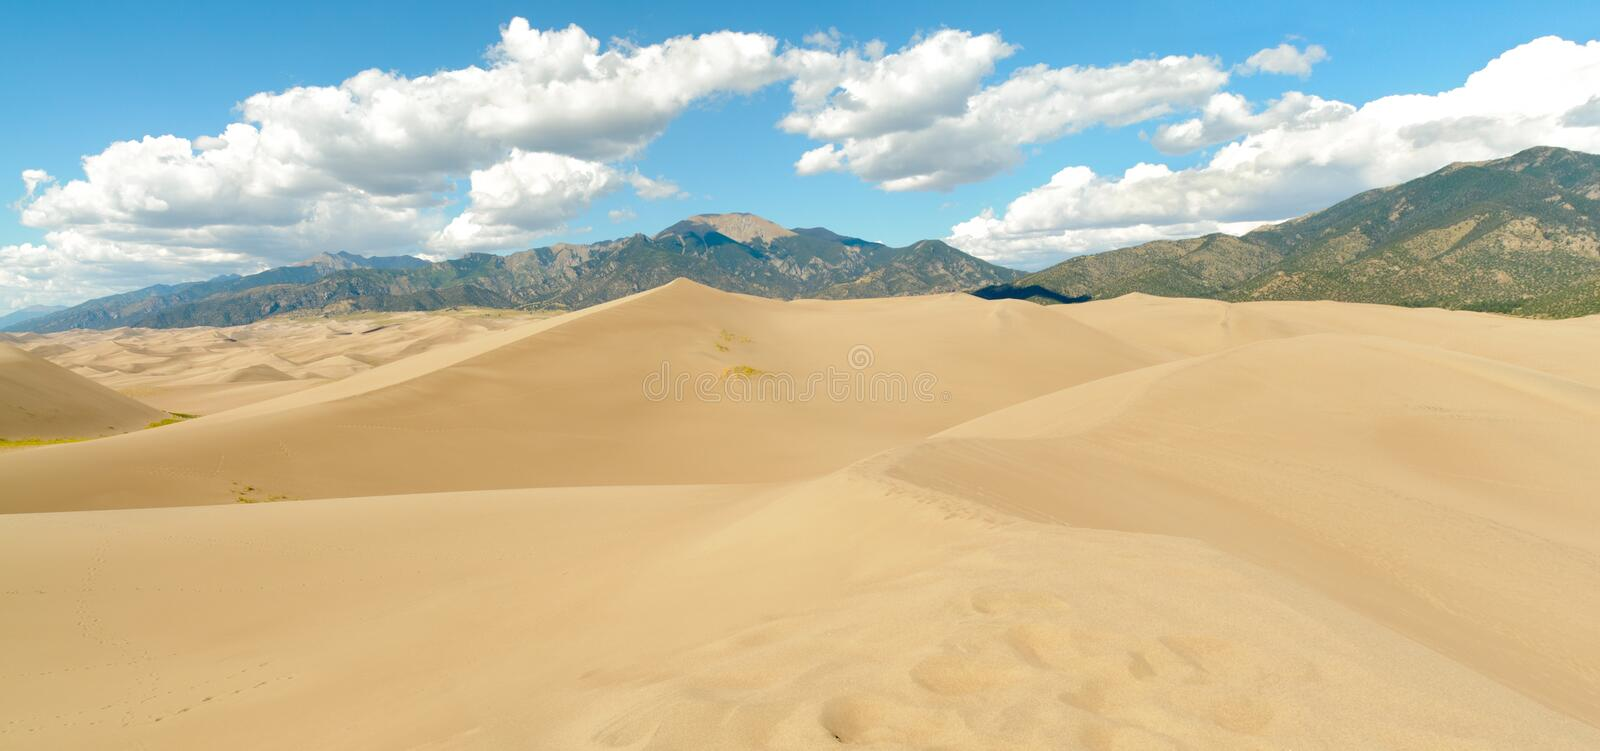 Download Sand dunes and mountains stock photo. Image of yellow - 21825640